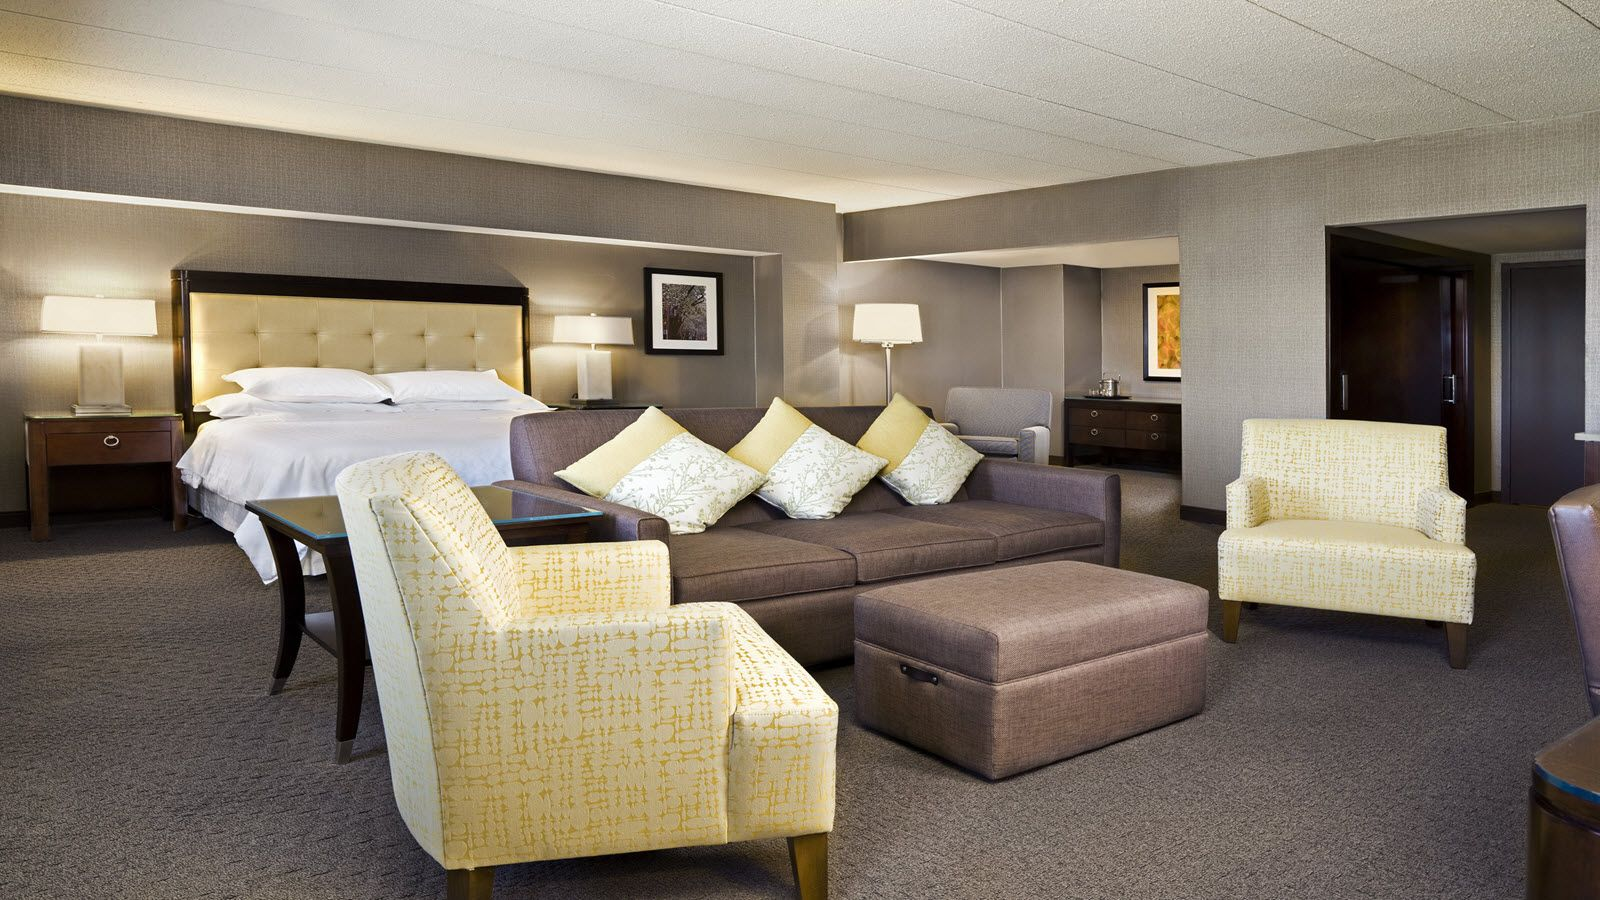 Sheraton Needham Hotel King Junior Suite